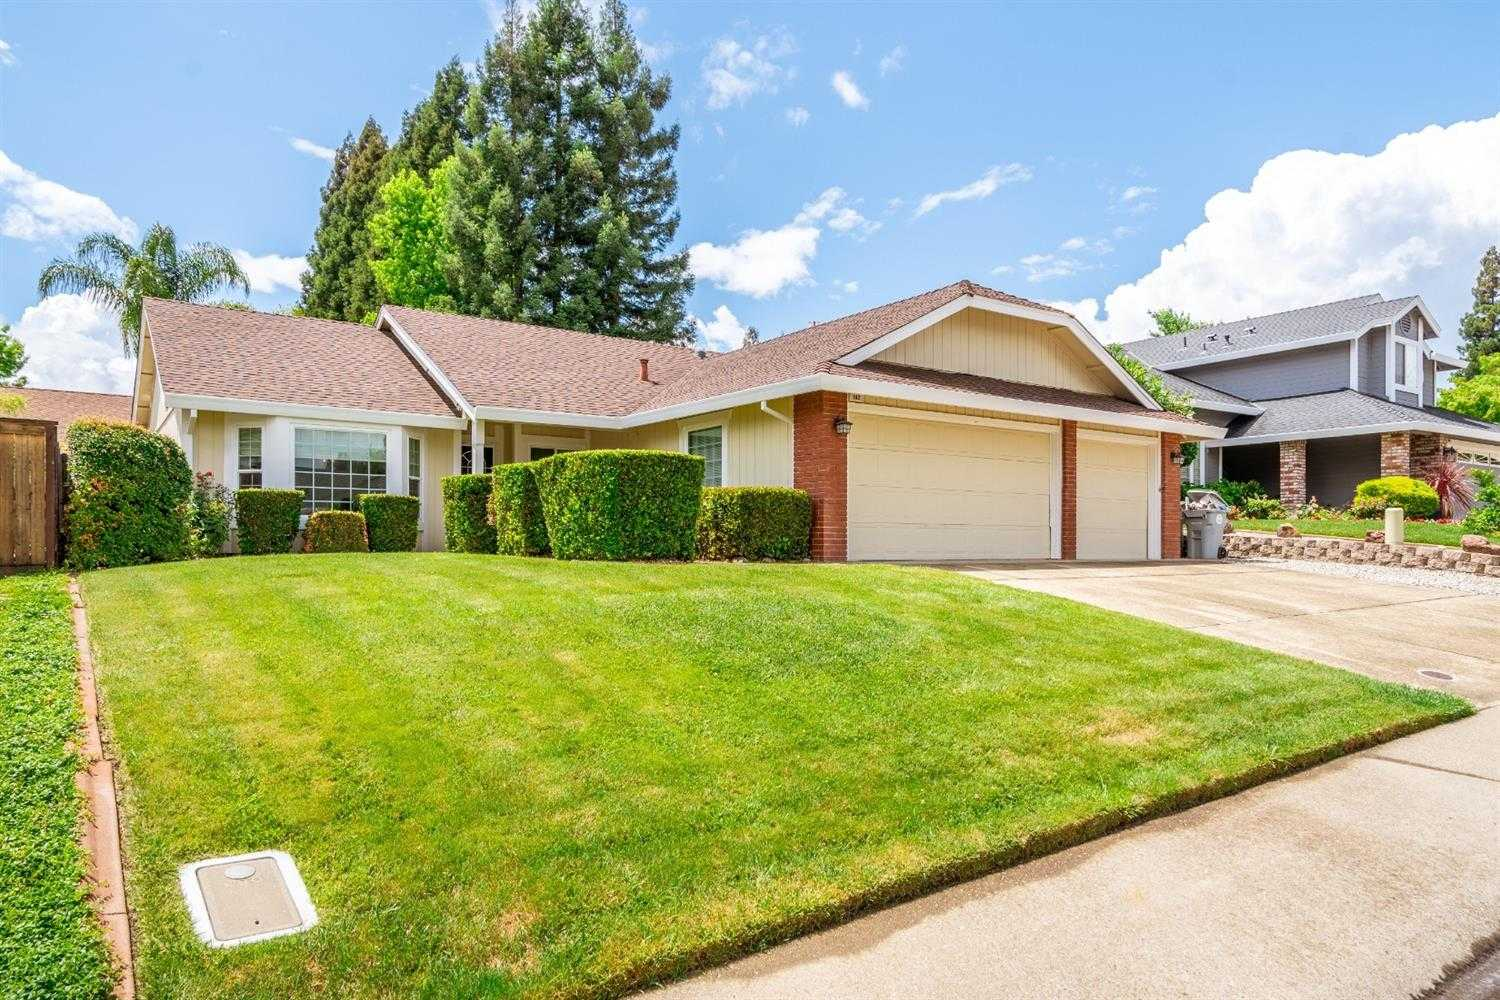 $542,500 - 3Br/2Ba -  for Sale in Folsom